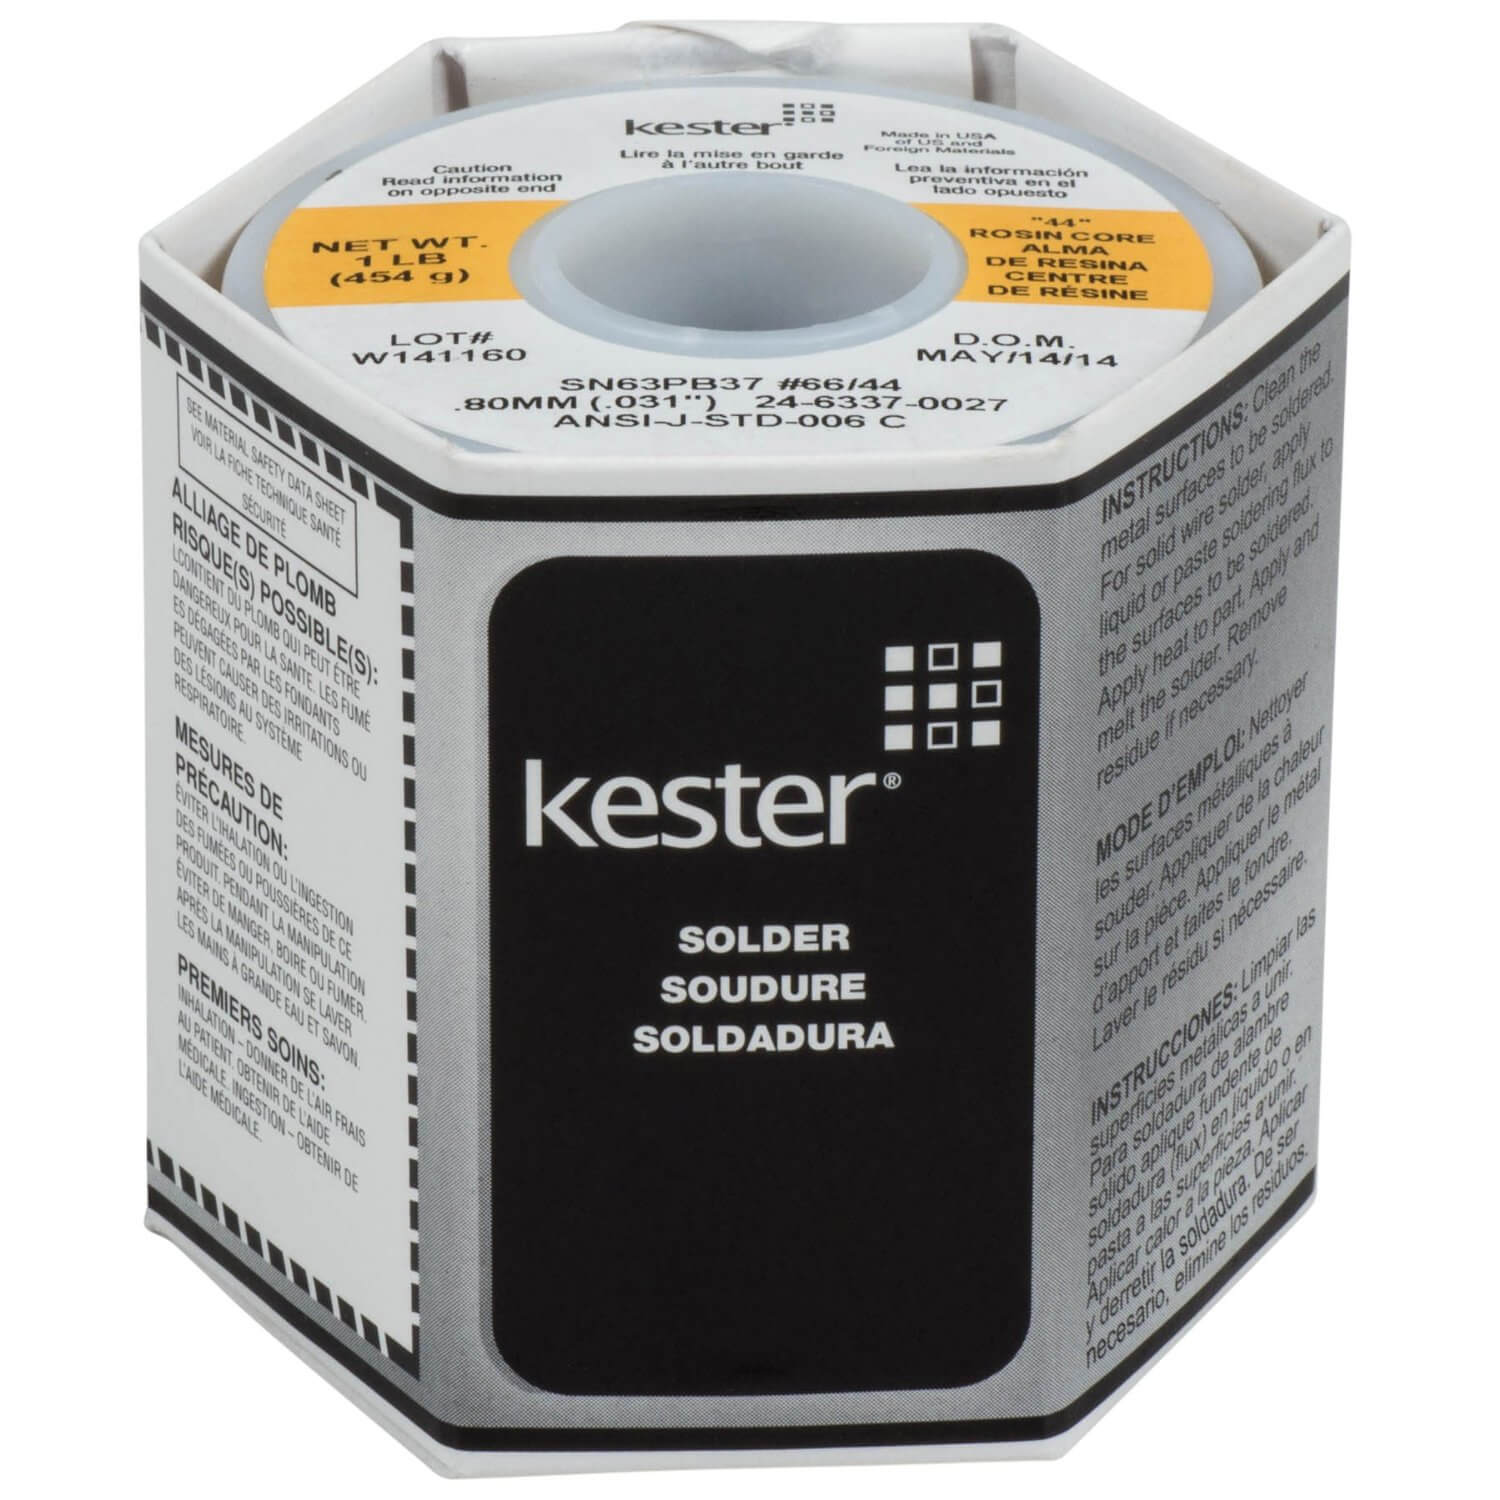 Kester 44 Rosin Core Solder 63/37 0.80mm (0.031 inches) 1 lb. Spool